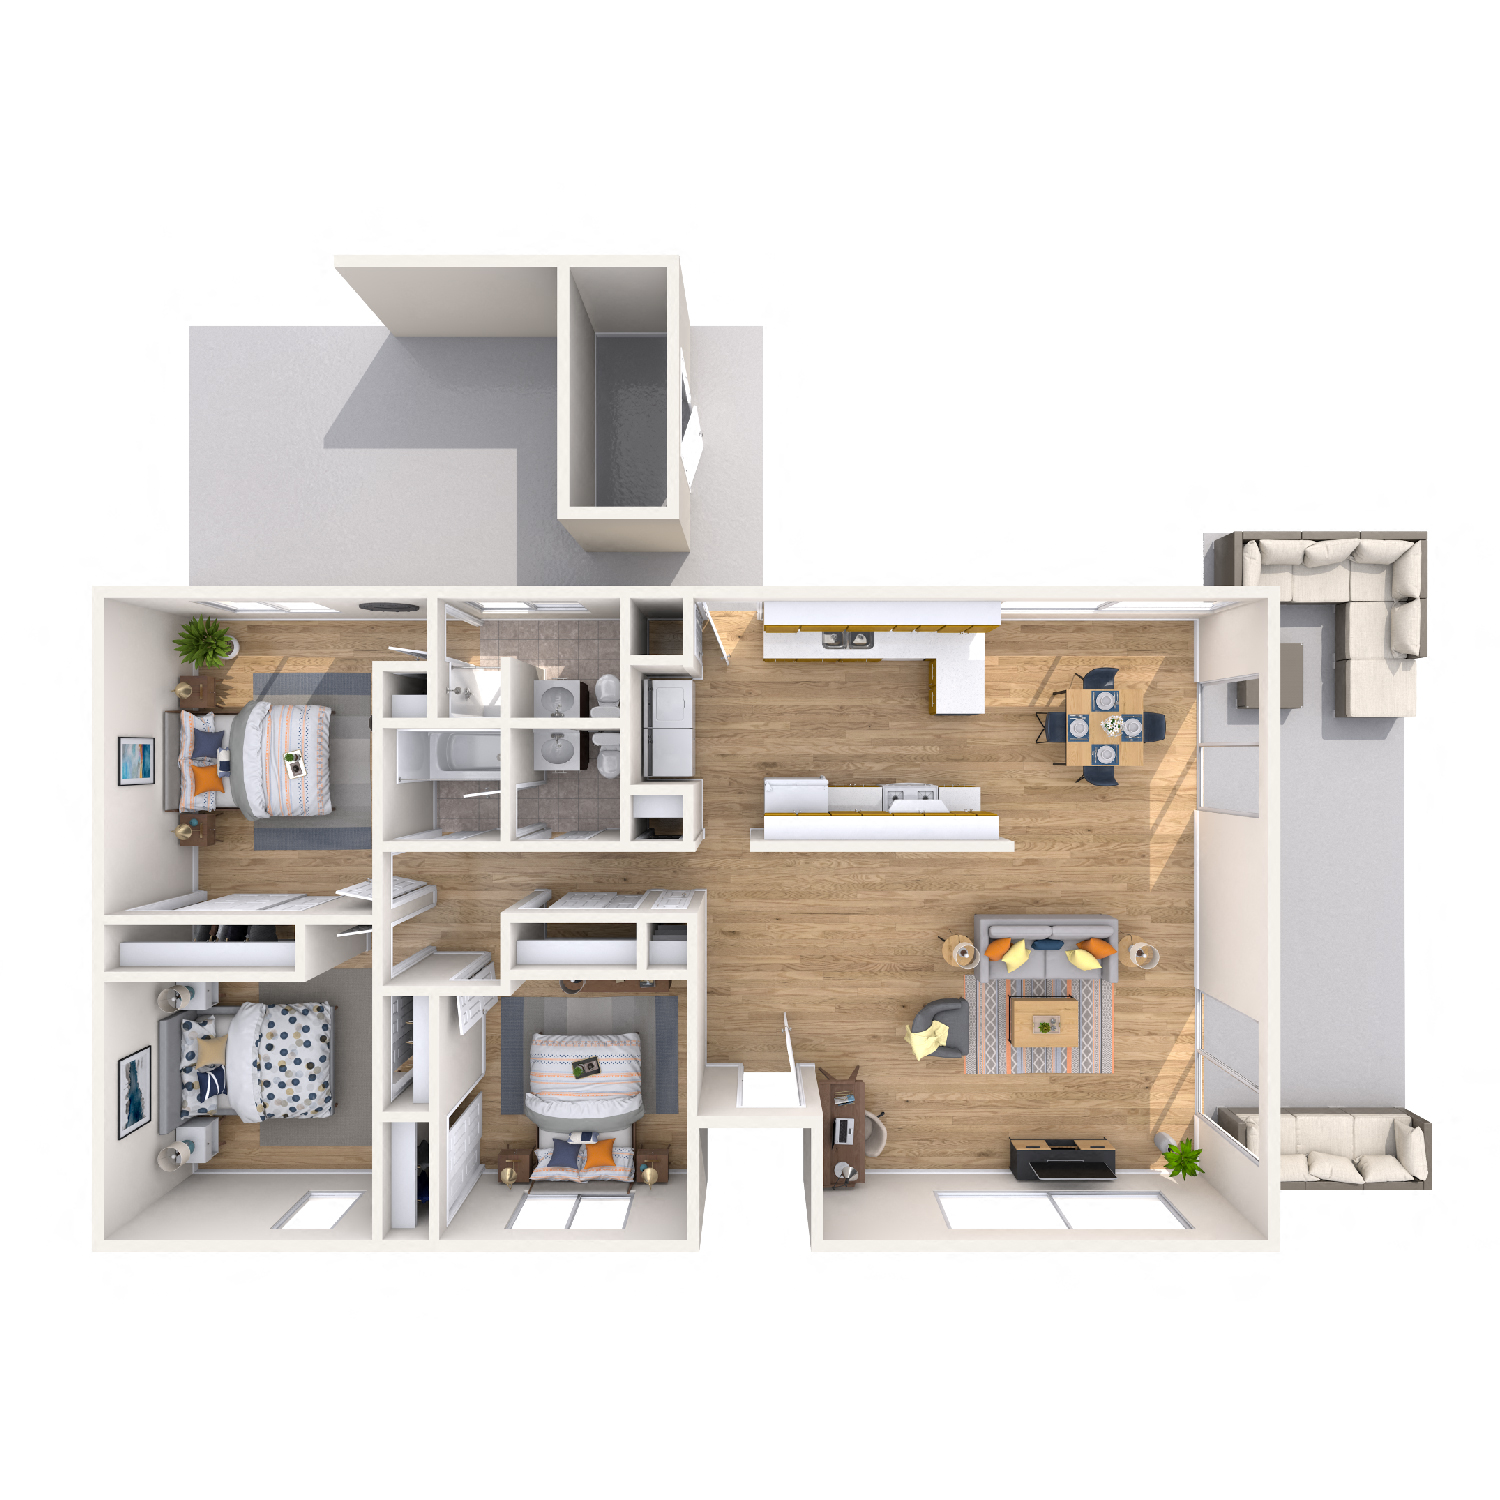 Lehua diagram - 3 bed 2 bath kapolei apt floorplan